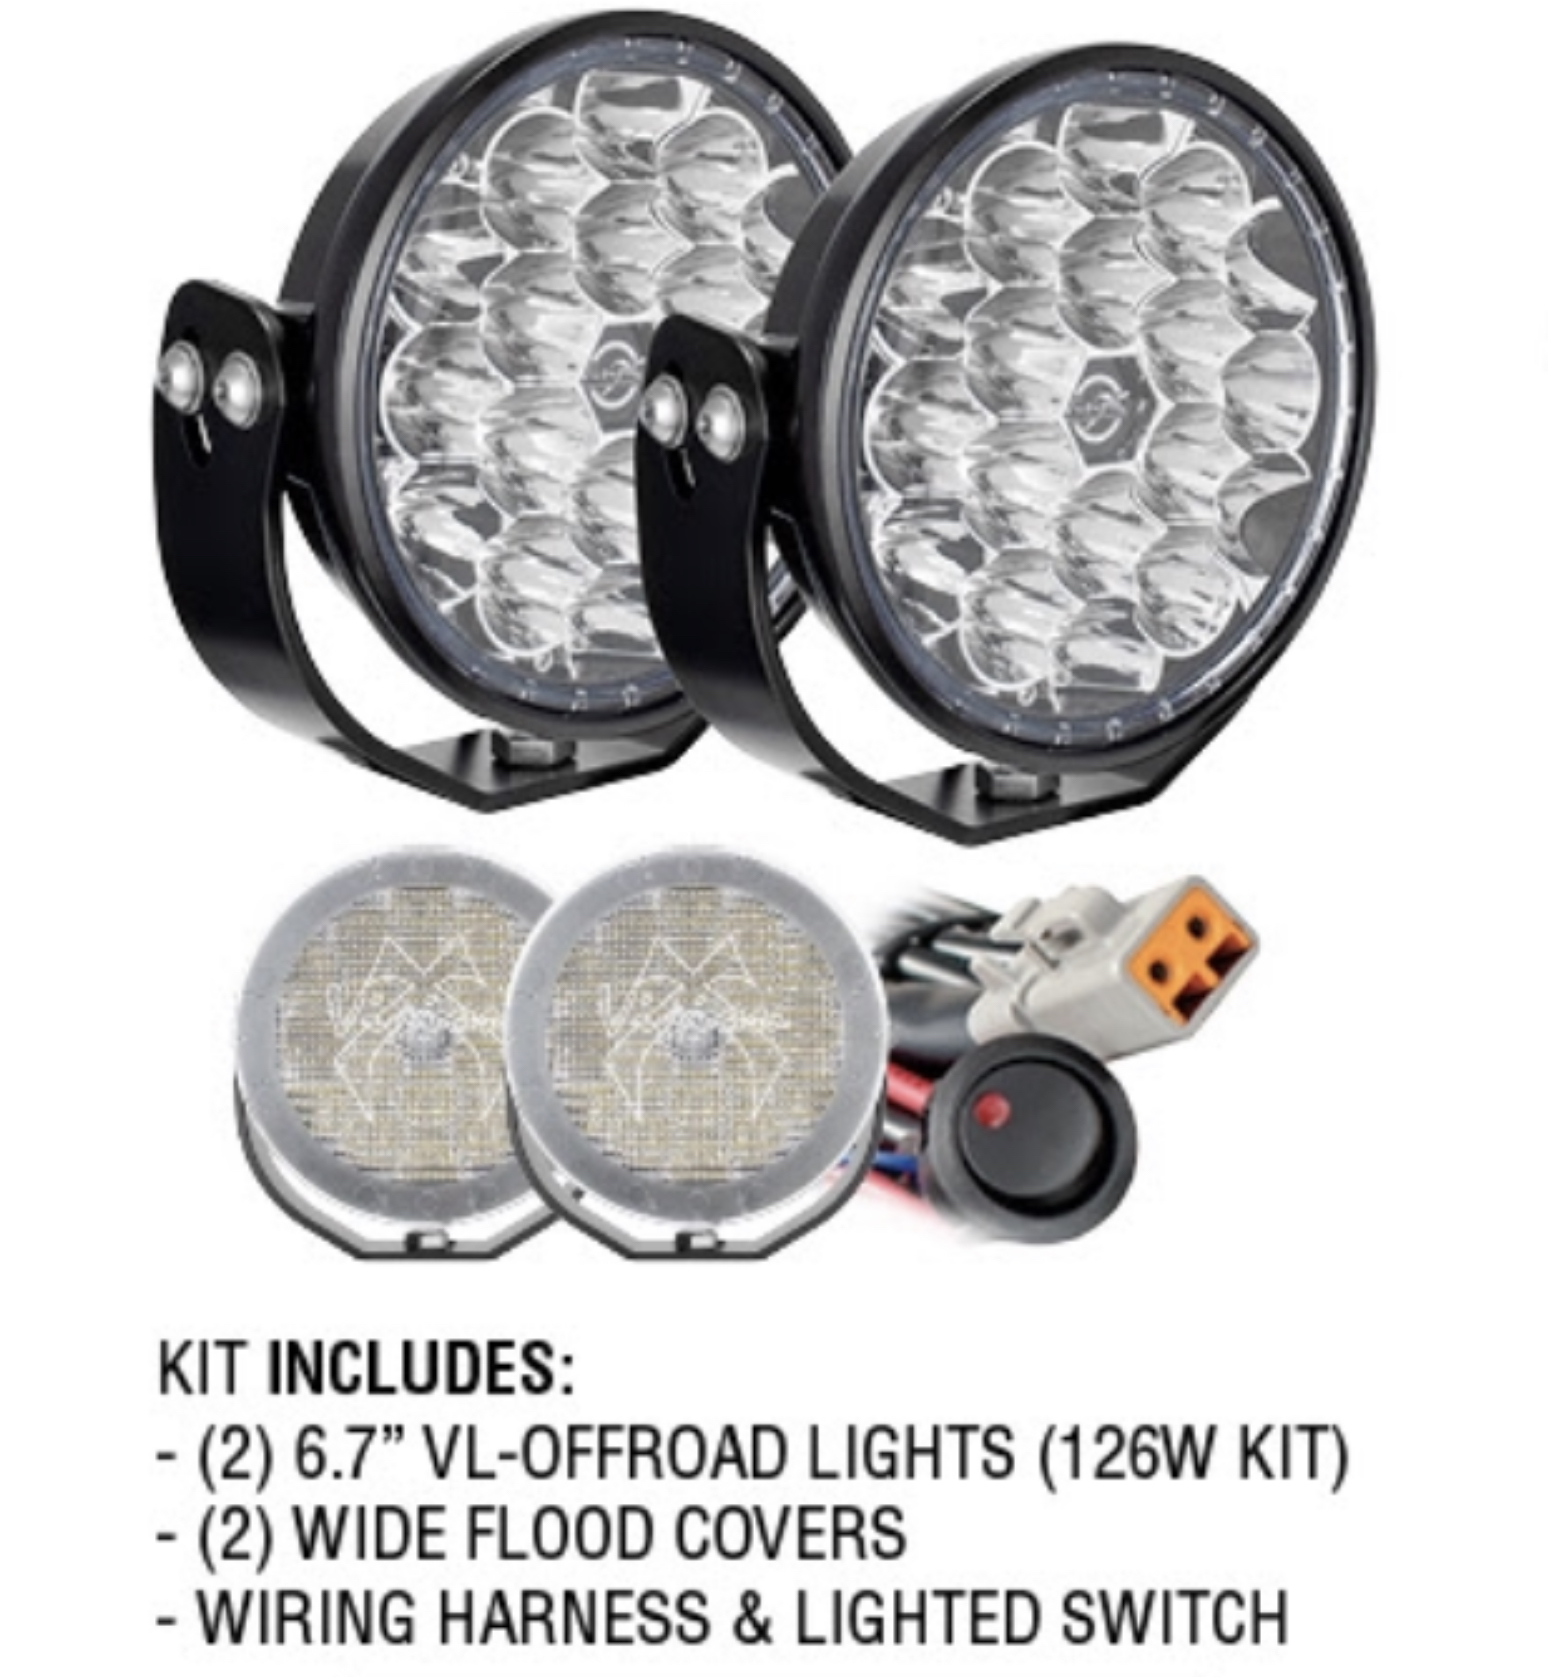 Stupendous Vision X Vl Off Road Series Lights Provide The Complete Package Wiring 101 Akebwellnesstrialsorg